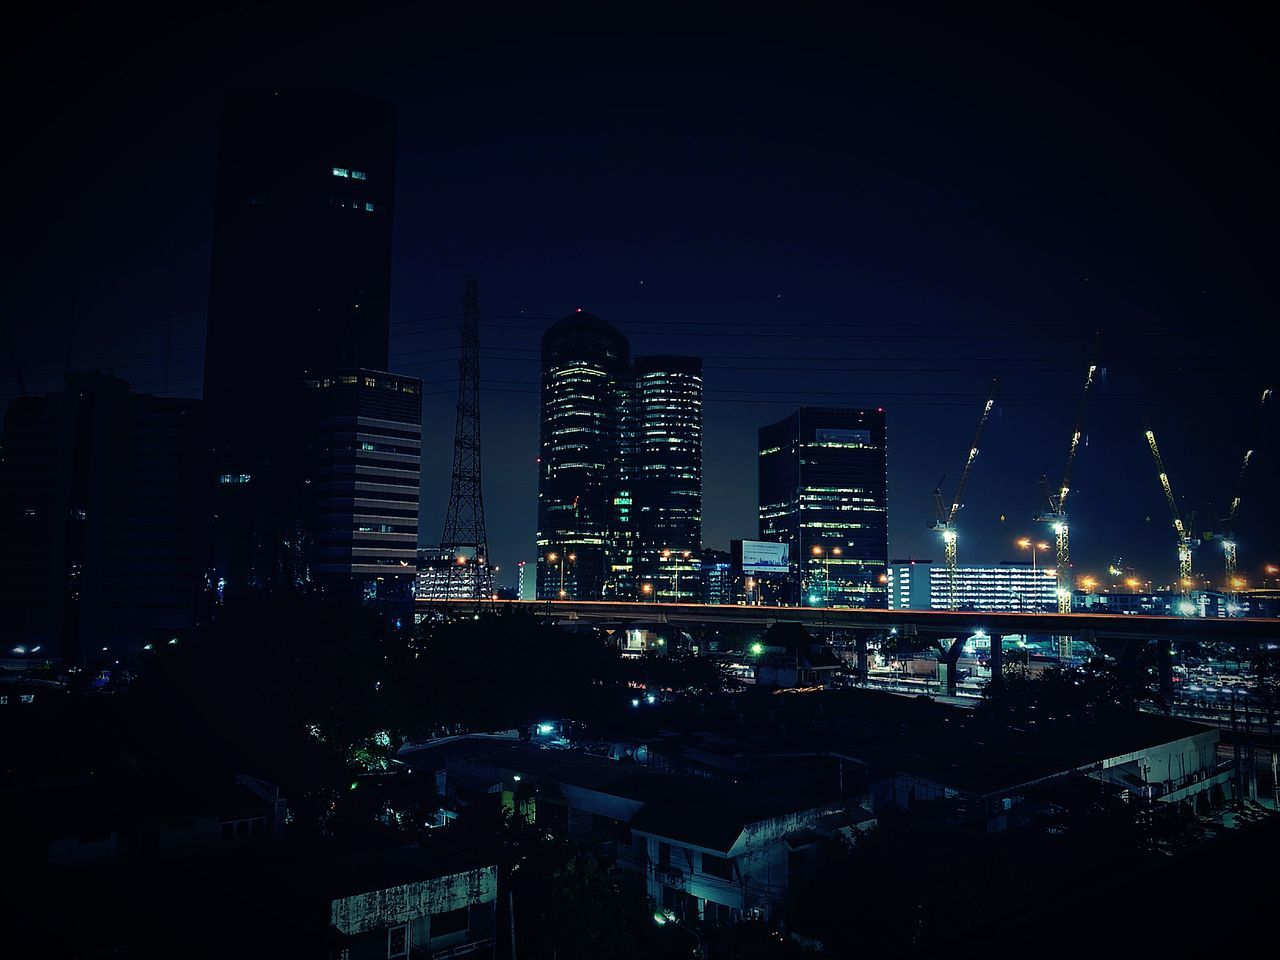 Architecture City Building Exterior Illuminated Built Structure Cityscape Skyscraper Tall - High Tower Night Sky Dark Urban Skyline Tall Modern Office Building Outdoors City Life Building Story No People